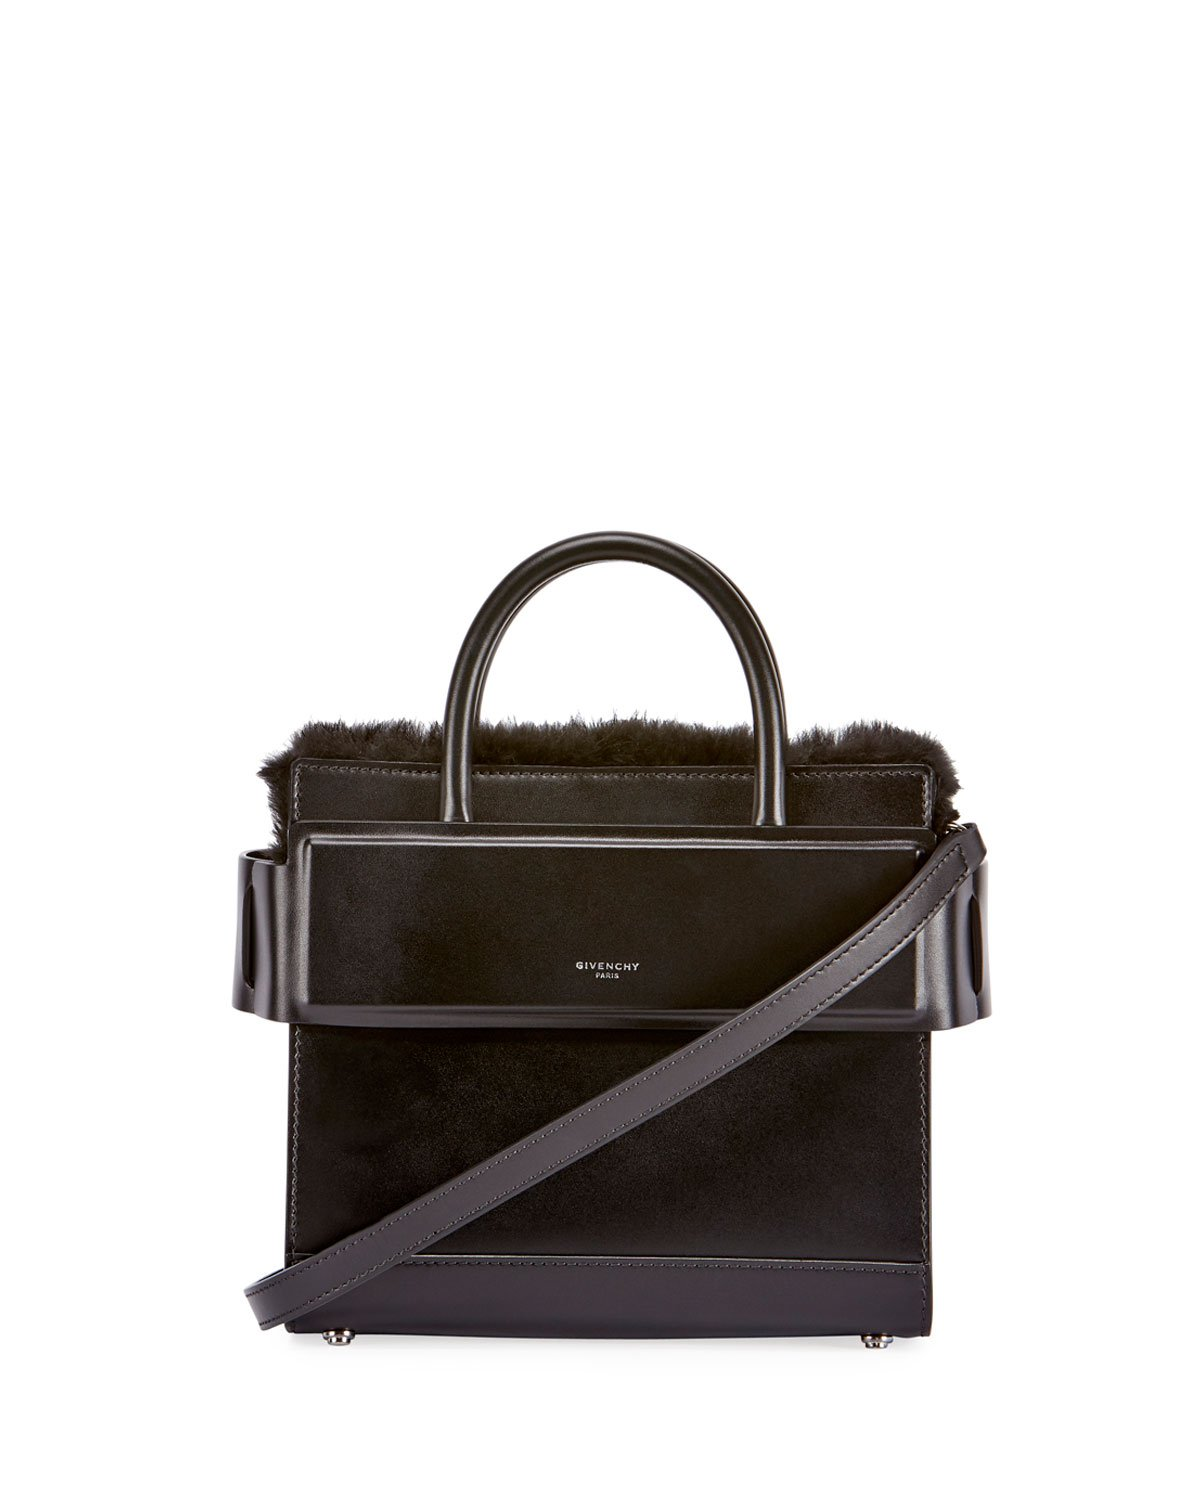 Givenchy Horizon Mini Fur-Trimmed Tote Bag, Black